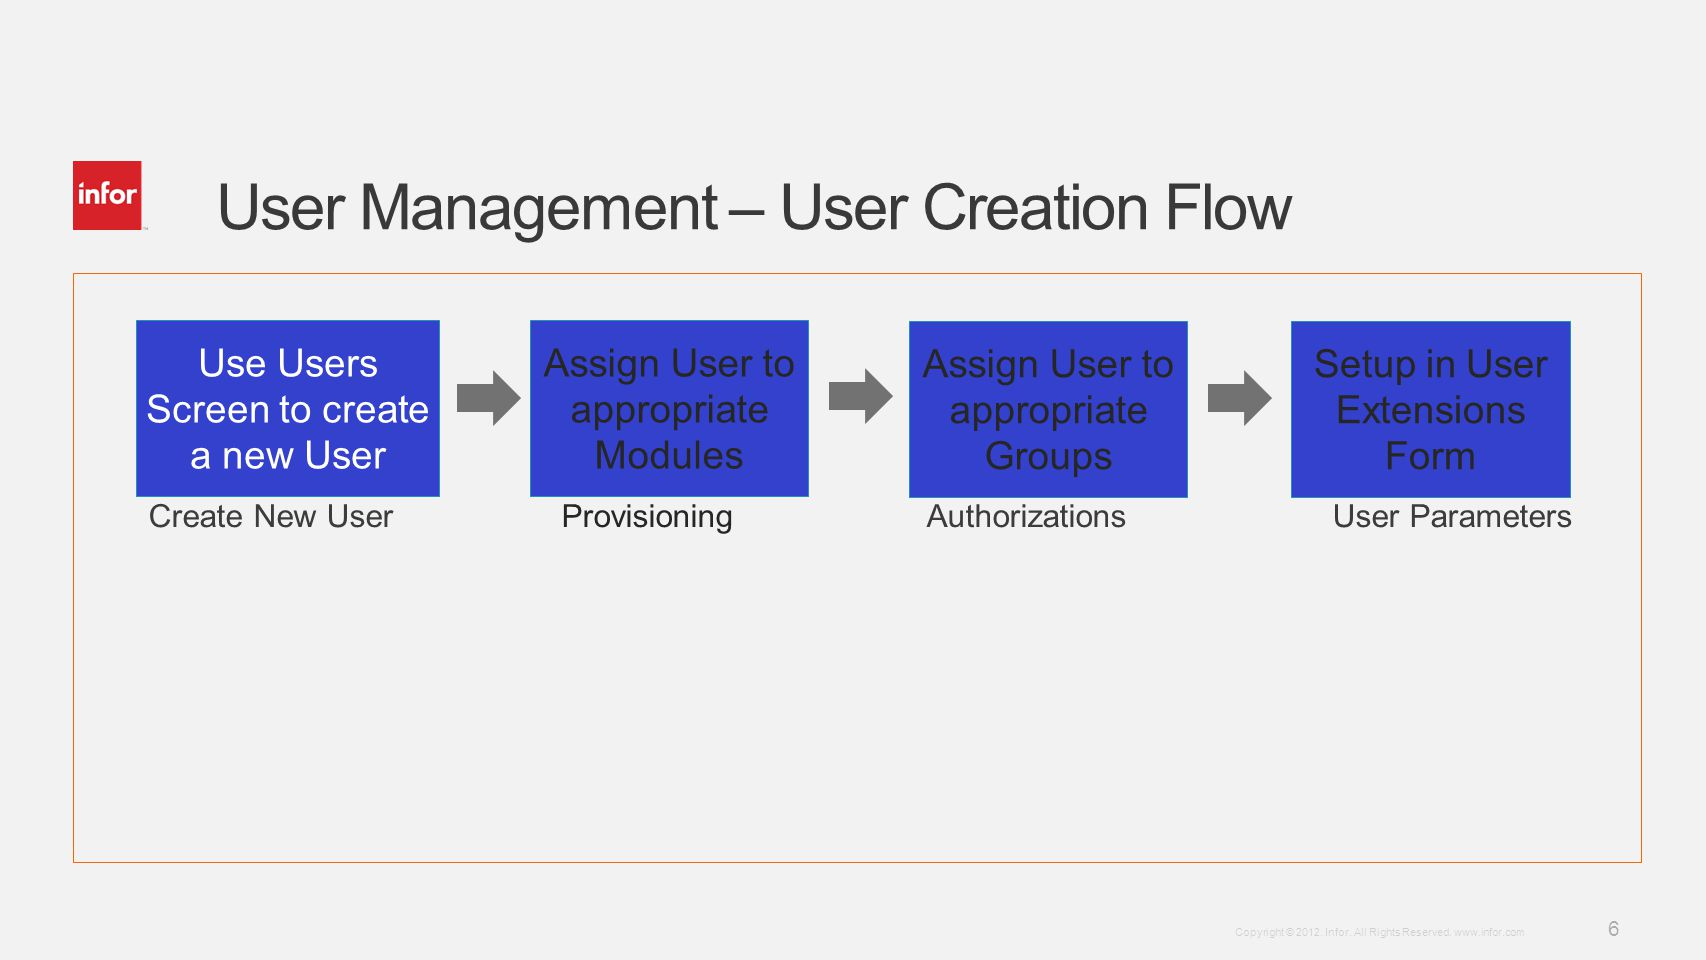 Template v4 September 27, 2012 6 Copyright © 2012. Infor. All Rights Reserved. www.infor.com User Management – User Creation Flow Use Users Screen to